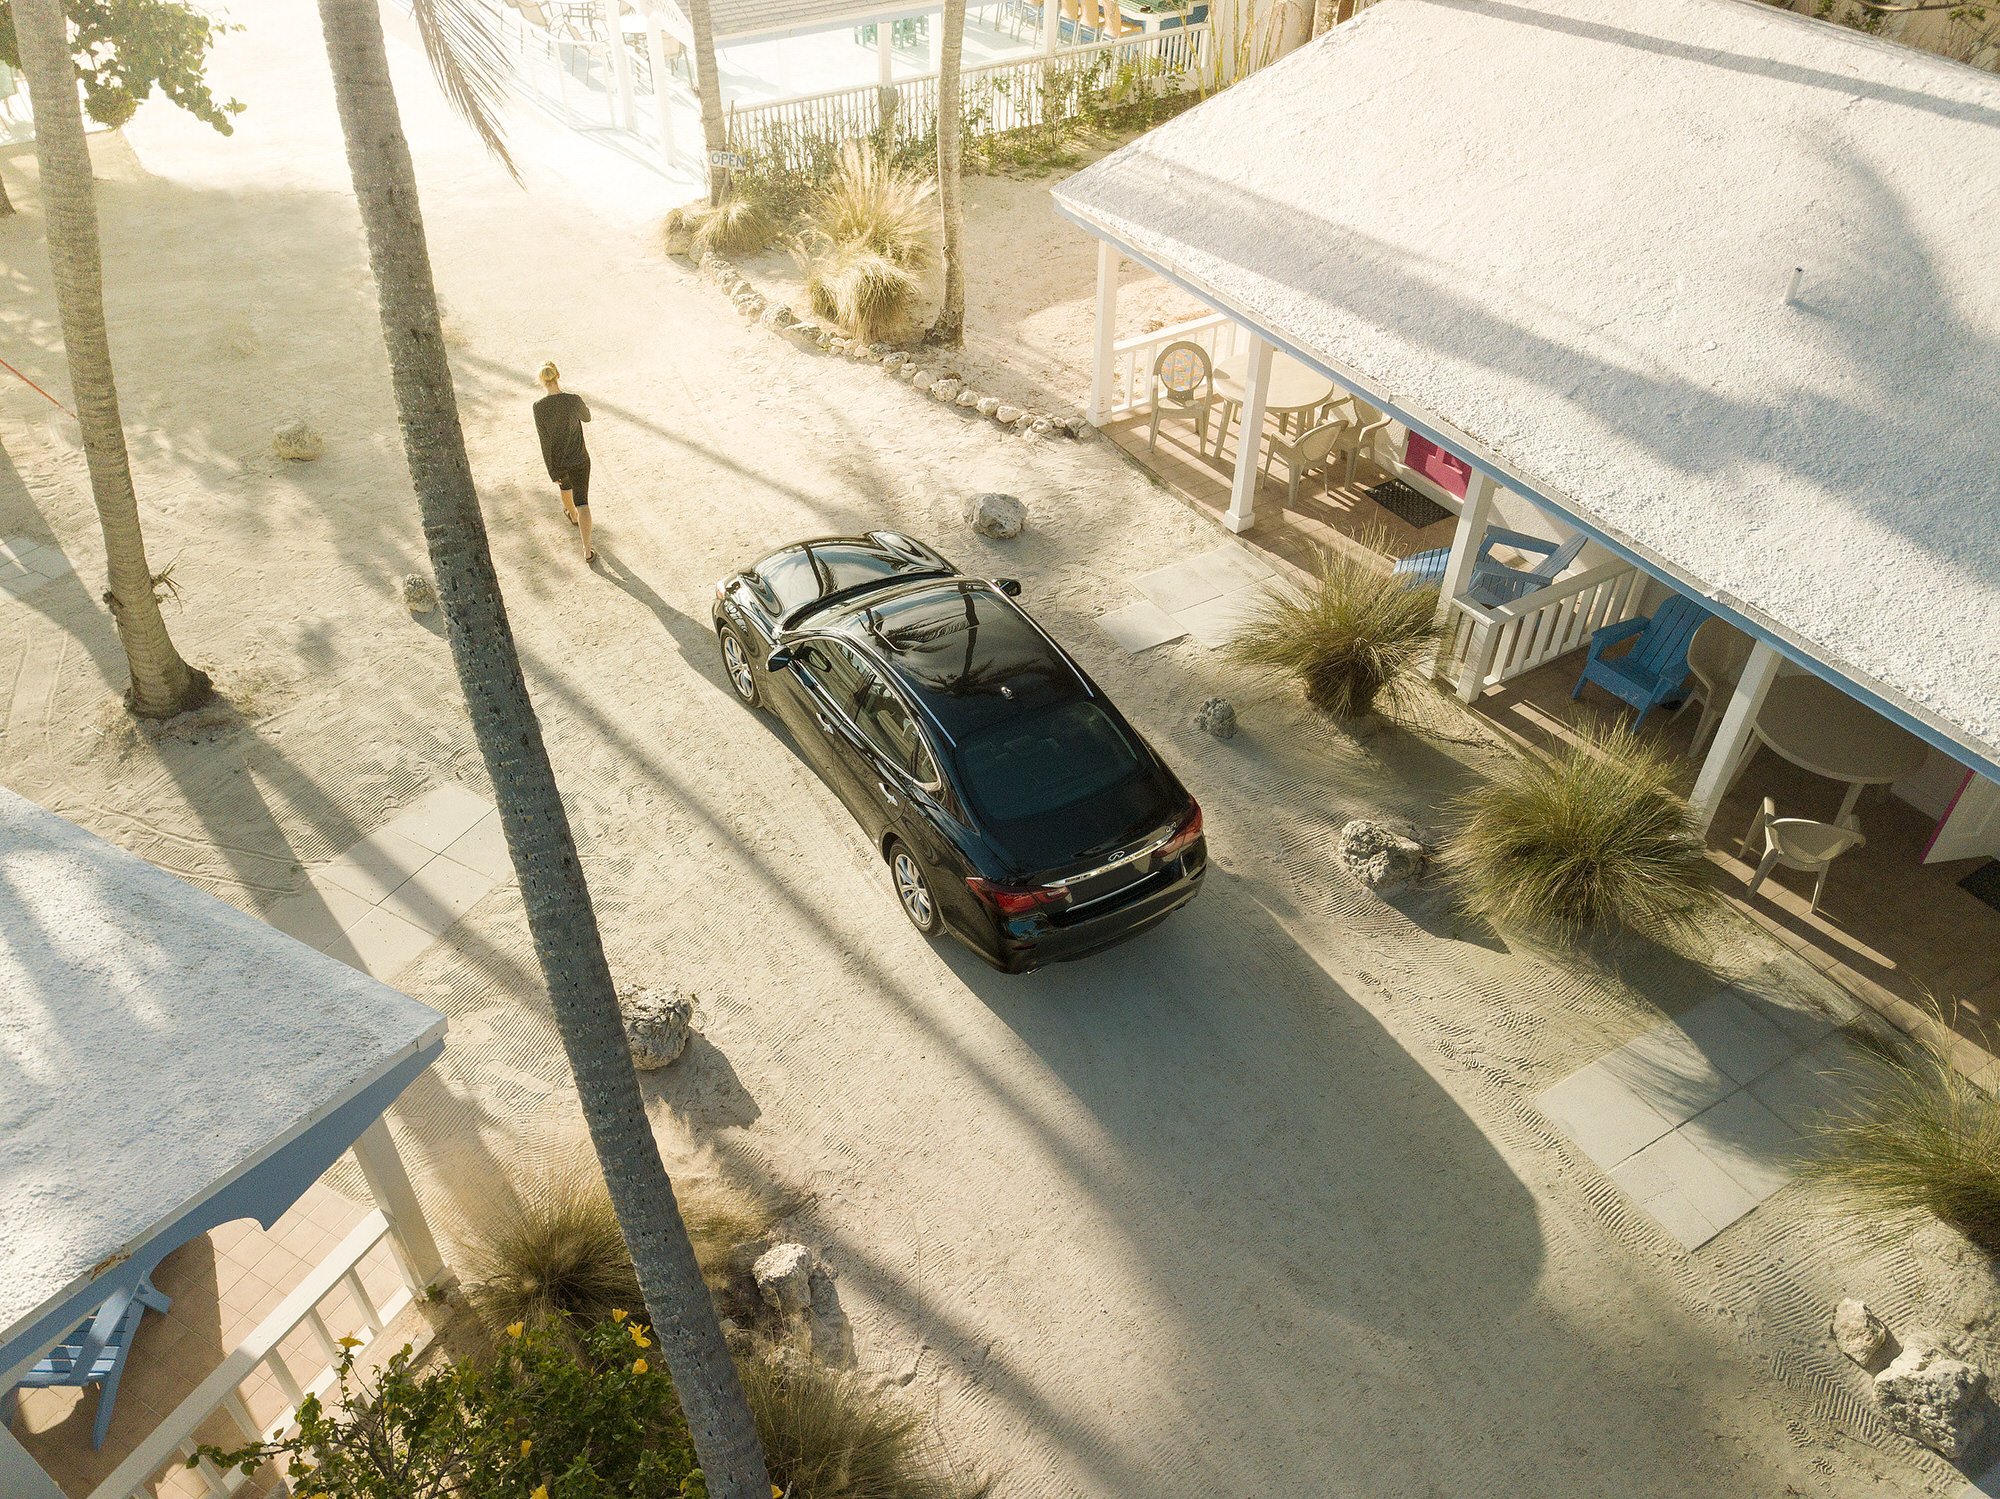 Infiniti Q70 at the beach in Islamorada, Florida.